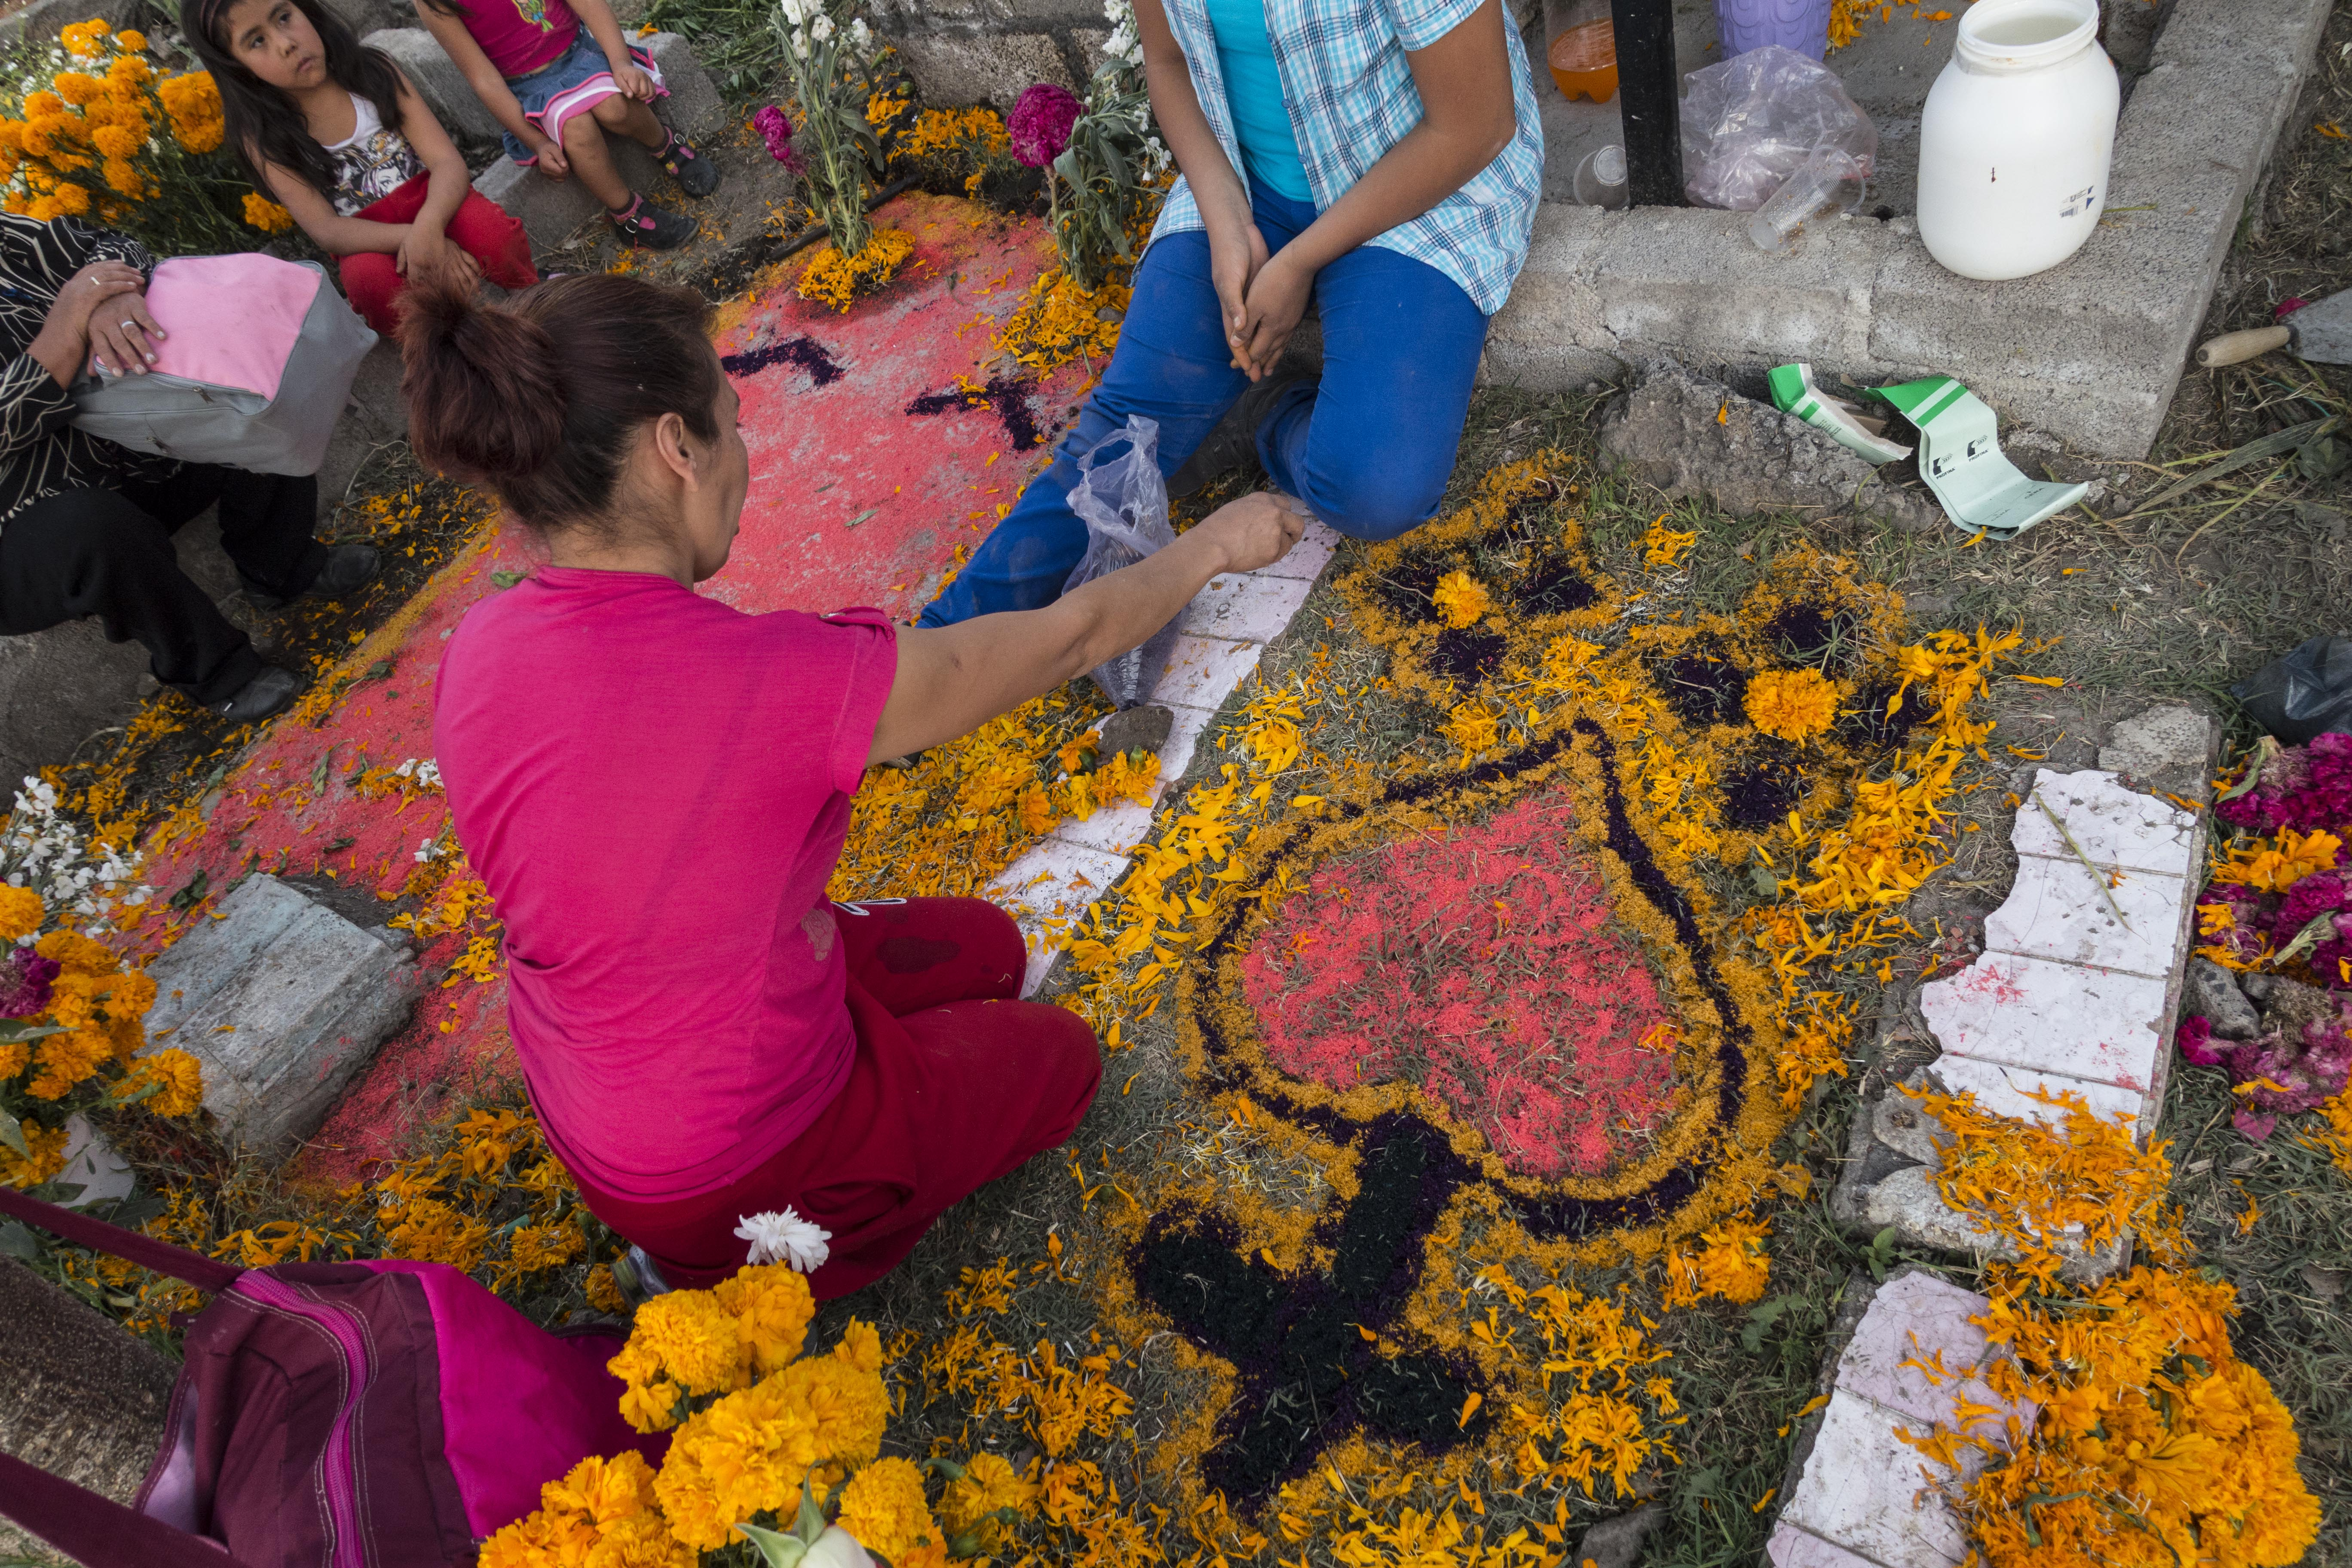 PICTURES: Photographer Antonio Olmos captures Mexico's 'Day of the Dead'